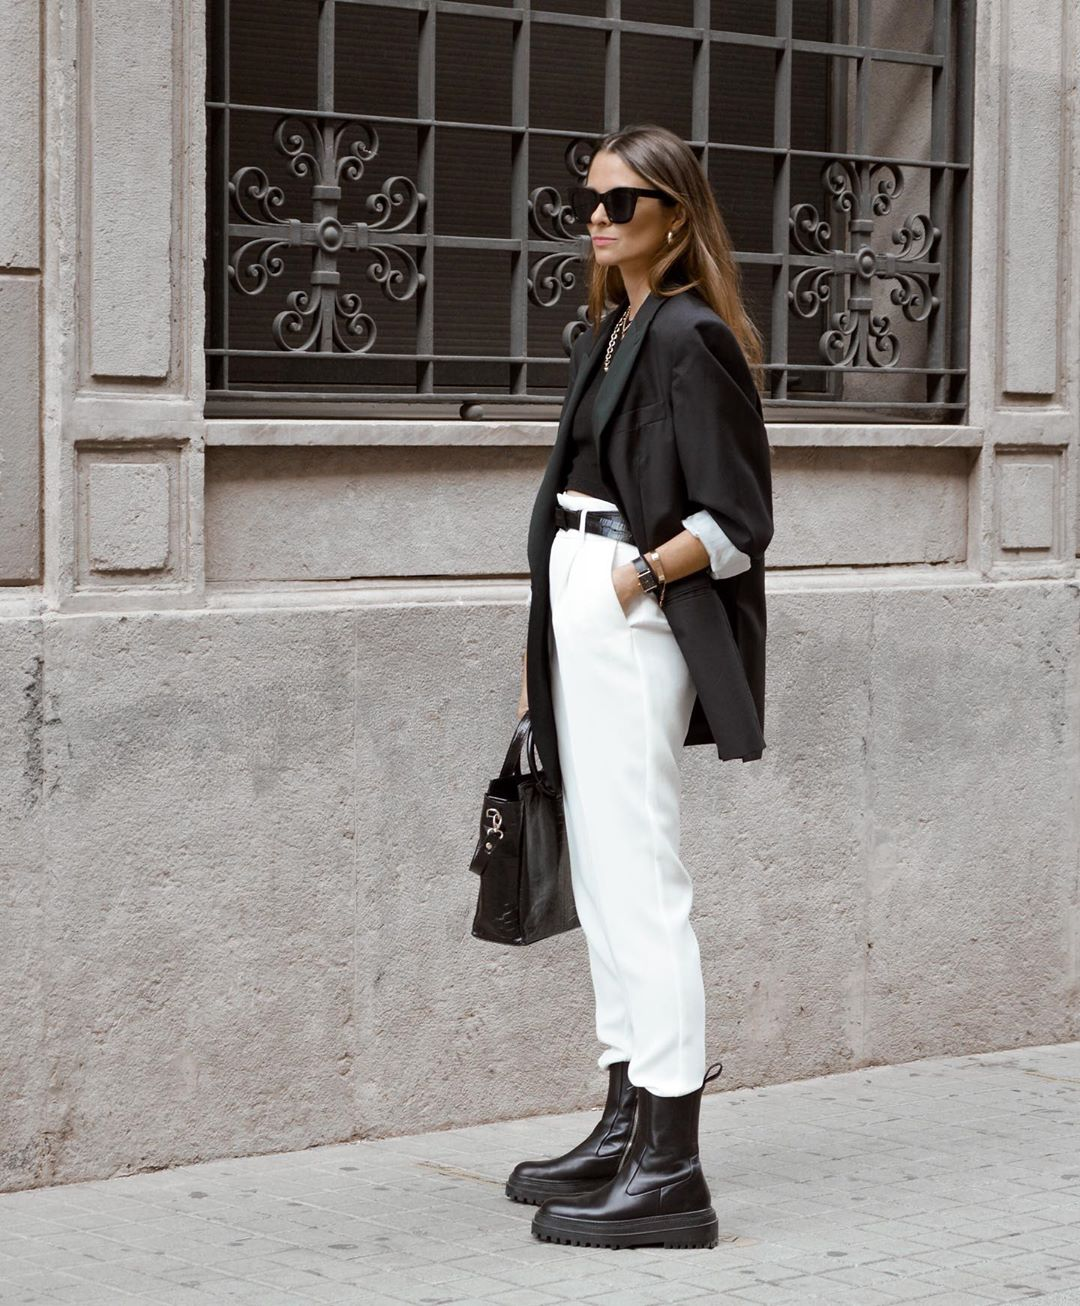 This Business Casual Look Is Ideal for Working From Home